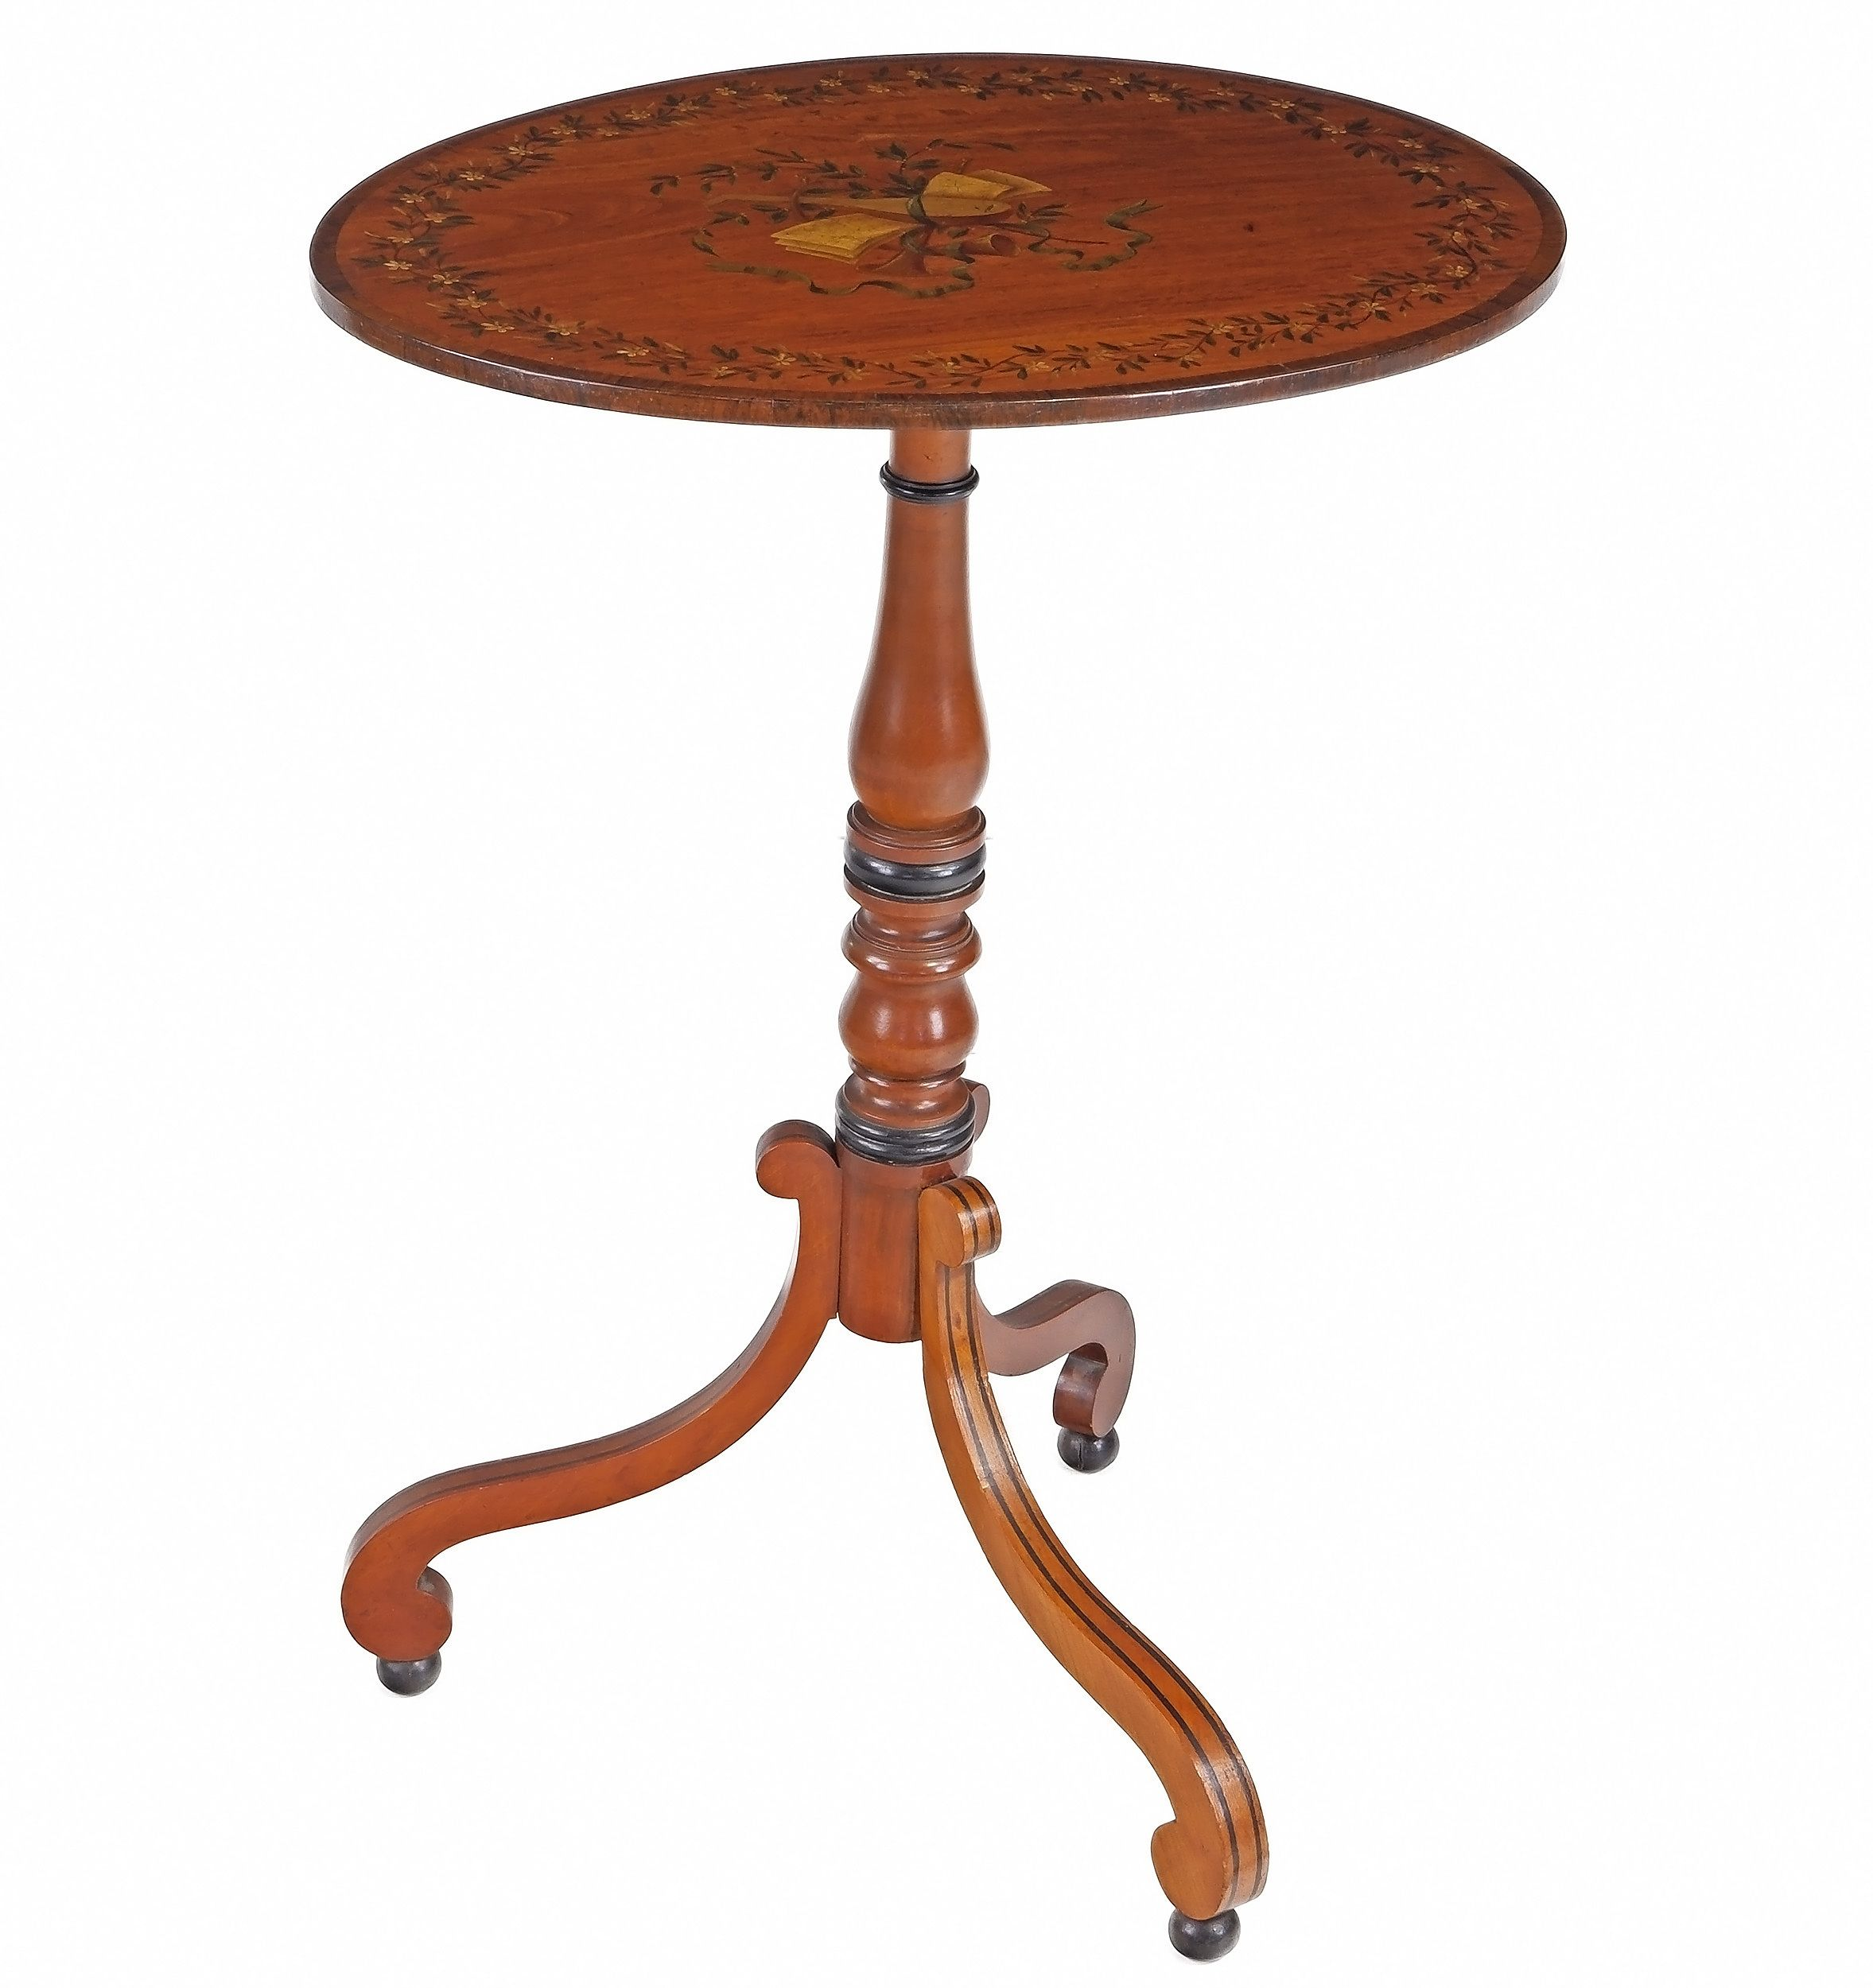 '19th Century Satinwood Tripod Wine Table with Original Polychrome Painted Decoration'